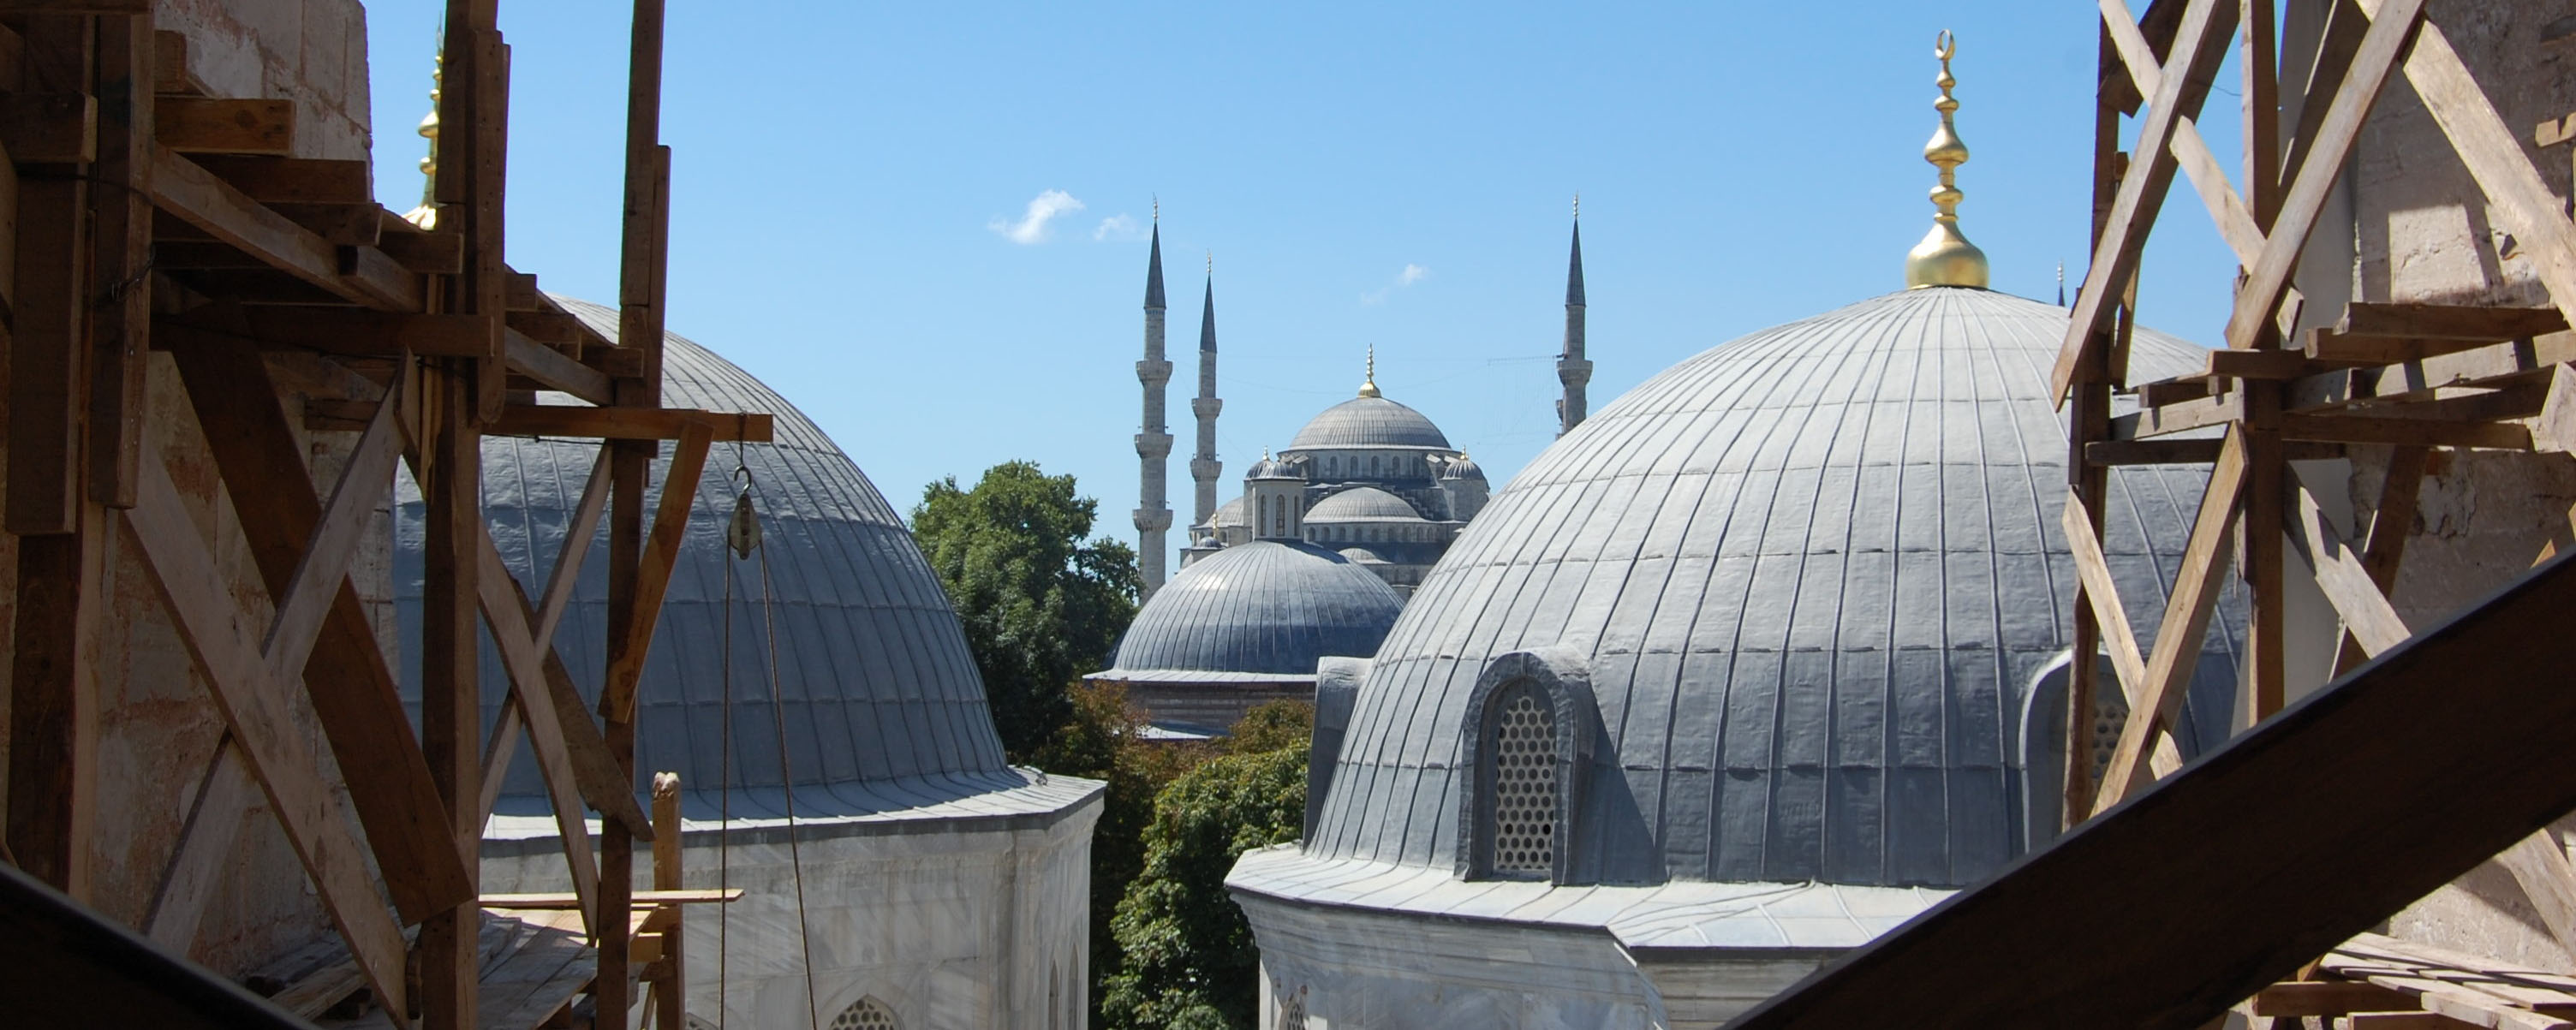 A view of the Hagia Sophia Mosque from the Sultan Ahmed Mosque in Istanbul. Turkey